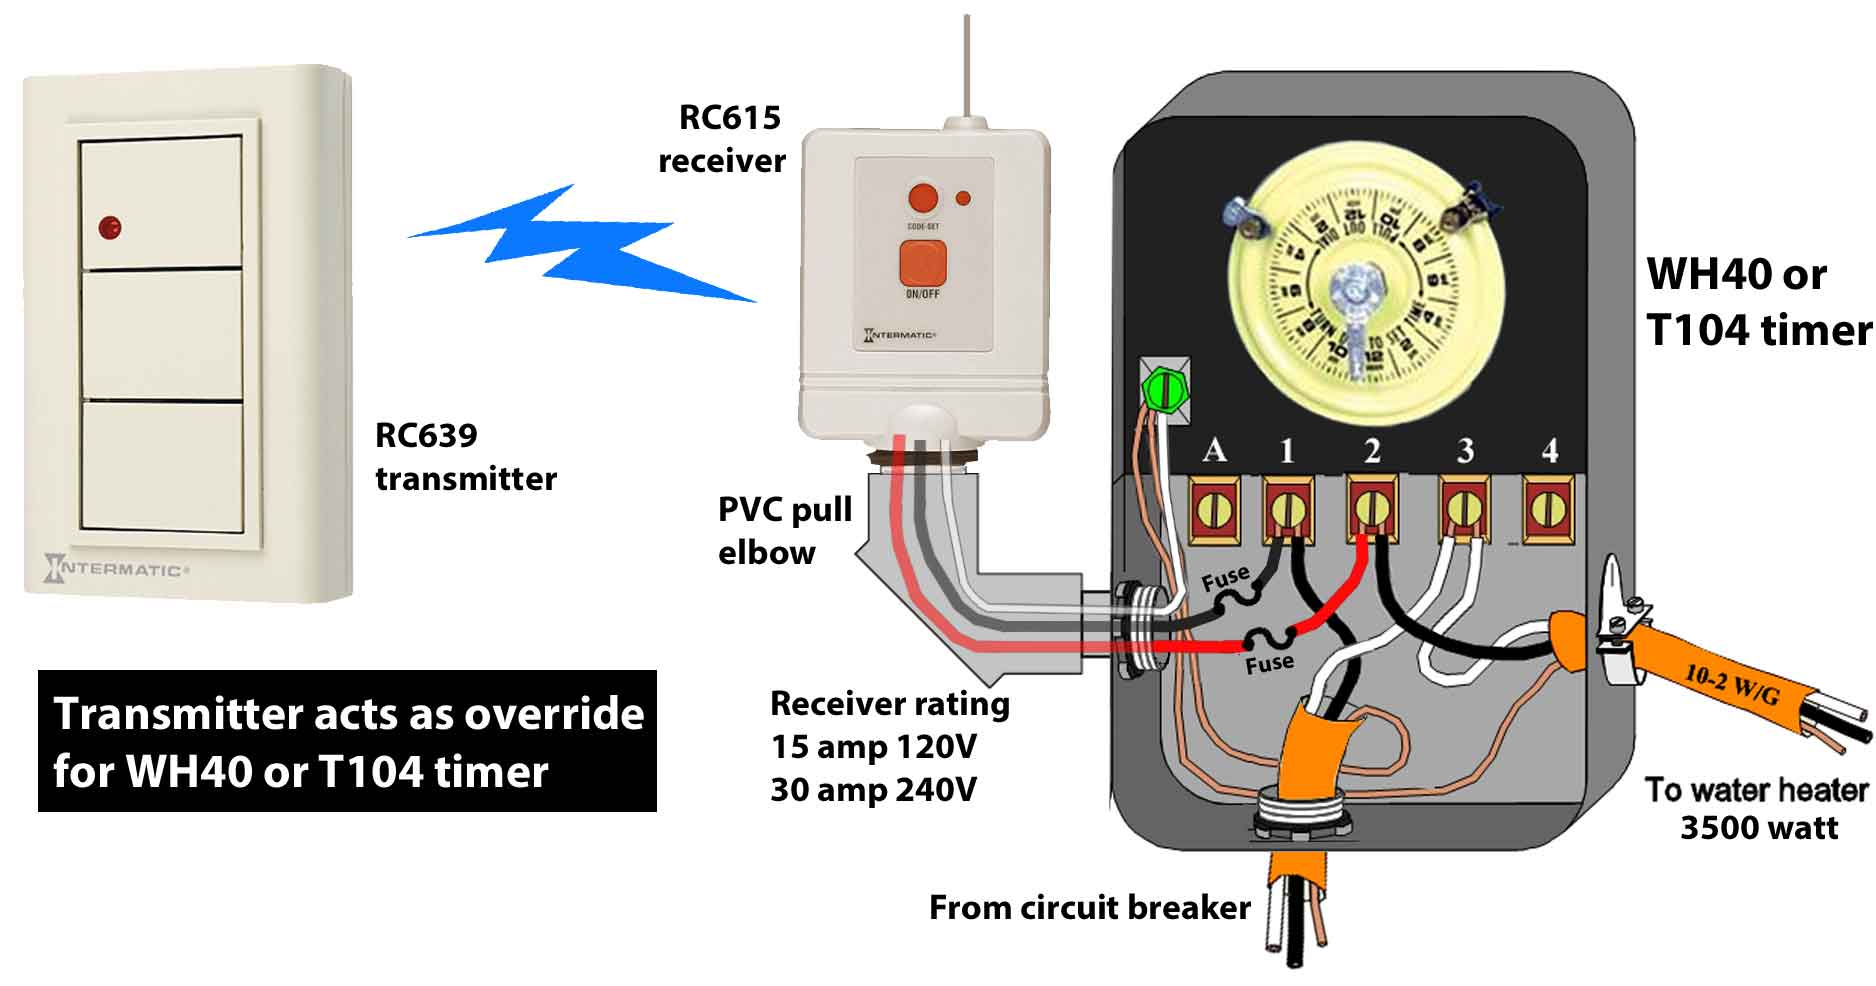 Swish Larger Image How To Wire Water Heater Water Heater Timer Home Depot Water Heater Timer Schedule houzz 01 Water Heater Timer